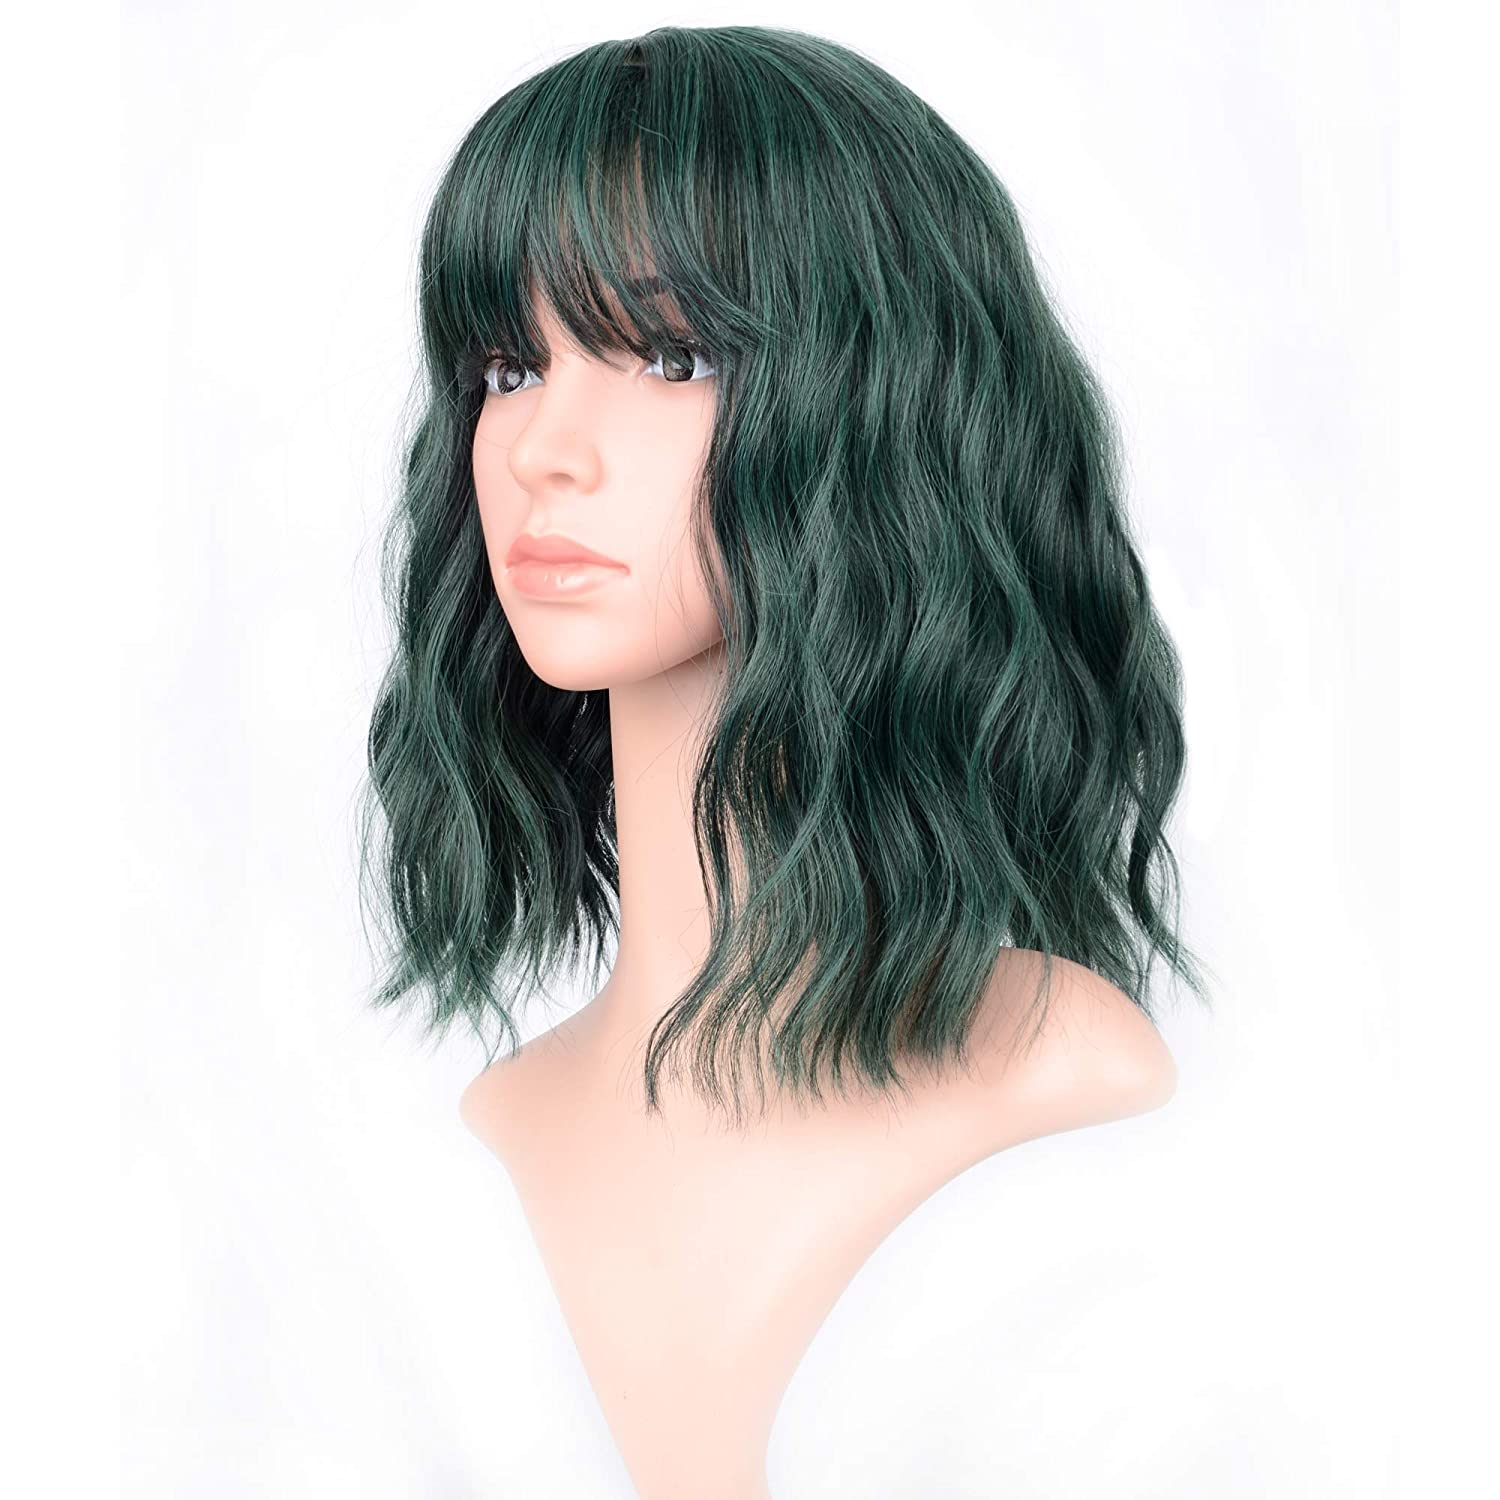 """VCKOVCKO Short Bob Wigs Pastel Wavy Wig With Air Bangs Women's Shoulder Length Wigs Curly Wavy Synthetic Cosplay Wig Pastel Bob Wig for Girl Colorful Costume Wigs(12"""", Mix Green)"""